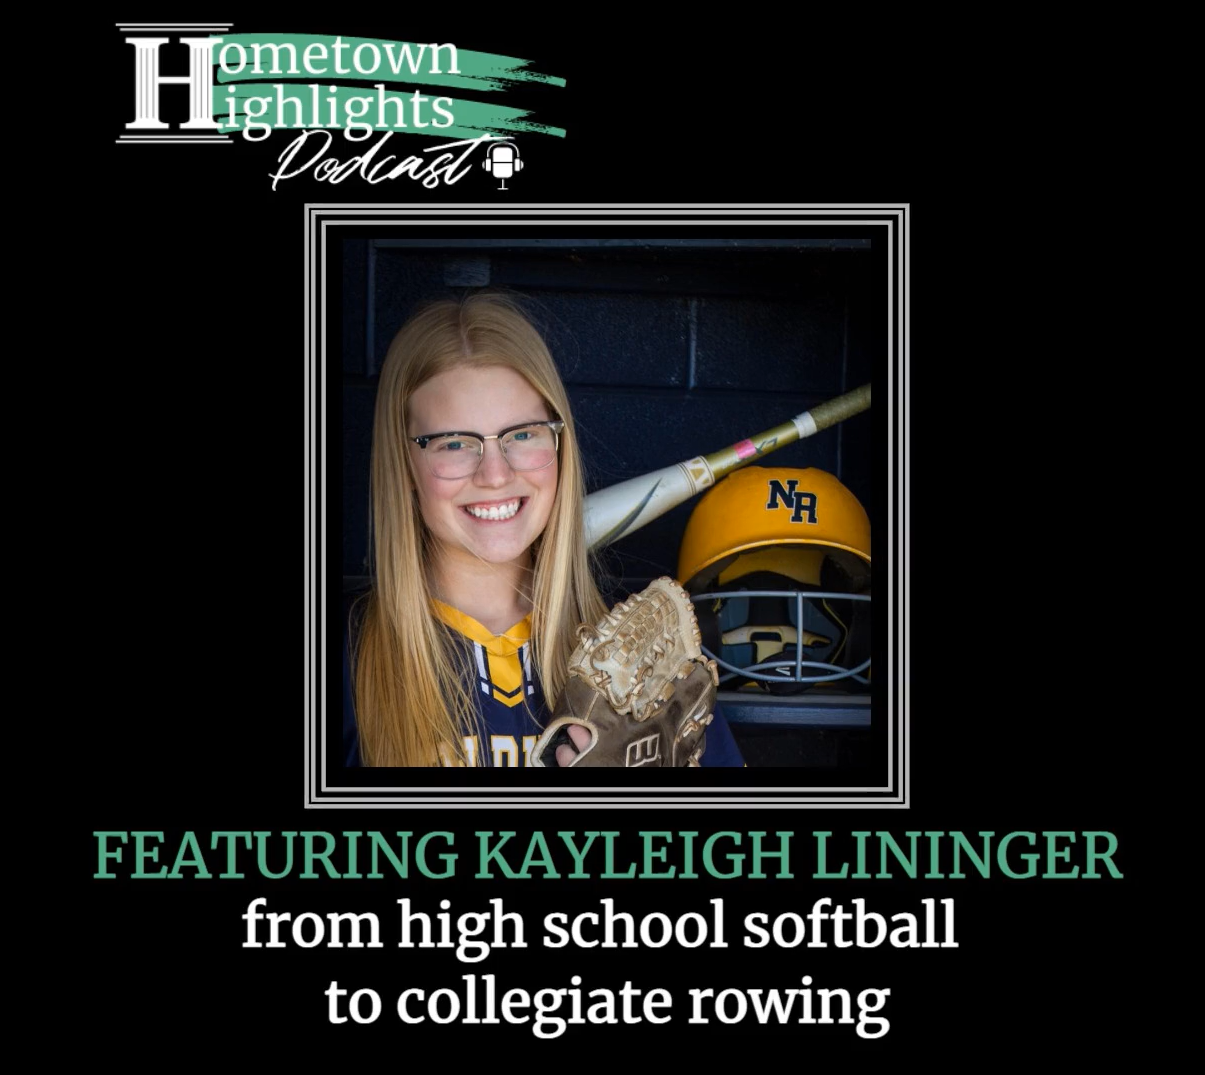 Episode 12: High School Softball & Collegiate Rowing with Kayleigh Lininger  | Hometown Highlights Podcast